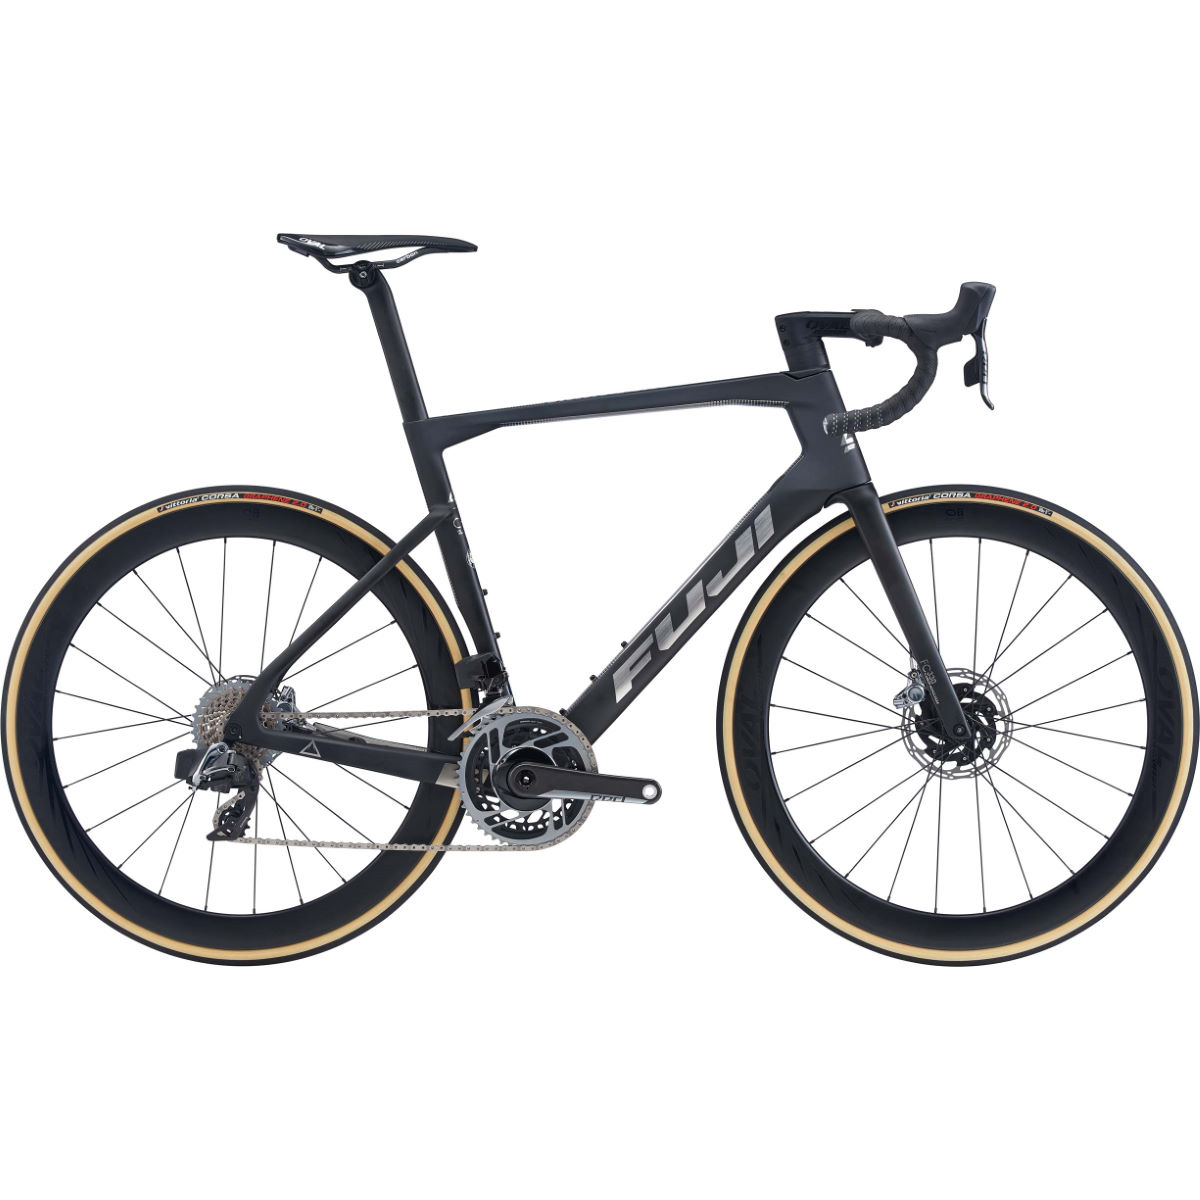 Fuji Transonic 1.1 Disc Road Bike (2020) – 54cm Satin Carbon – Chrom